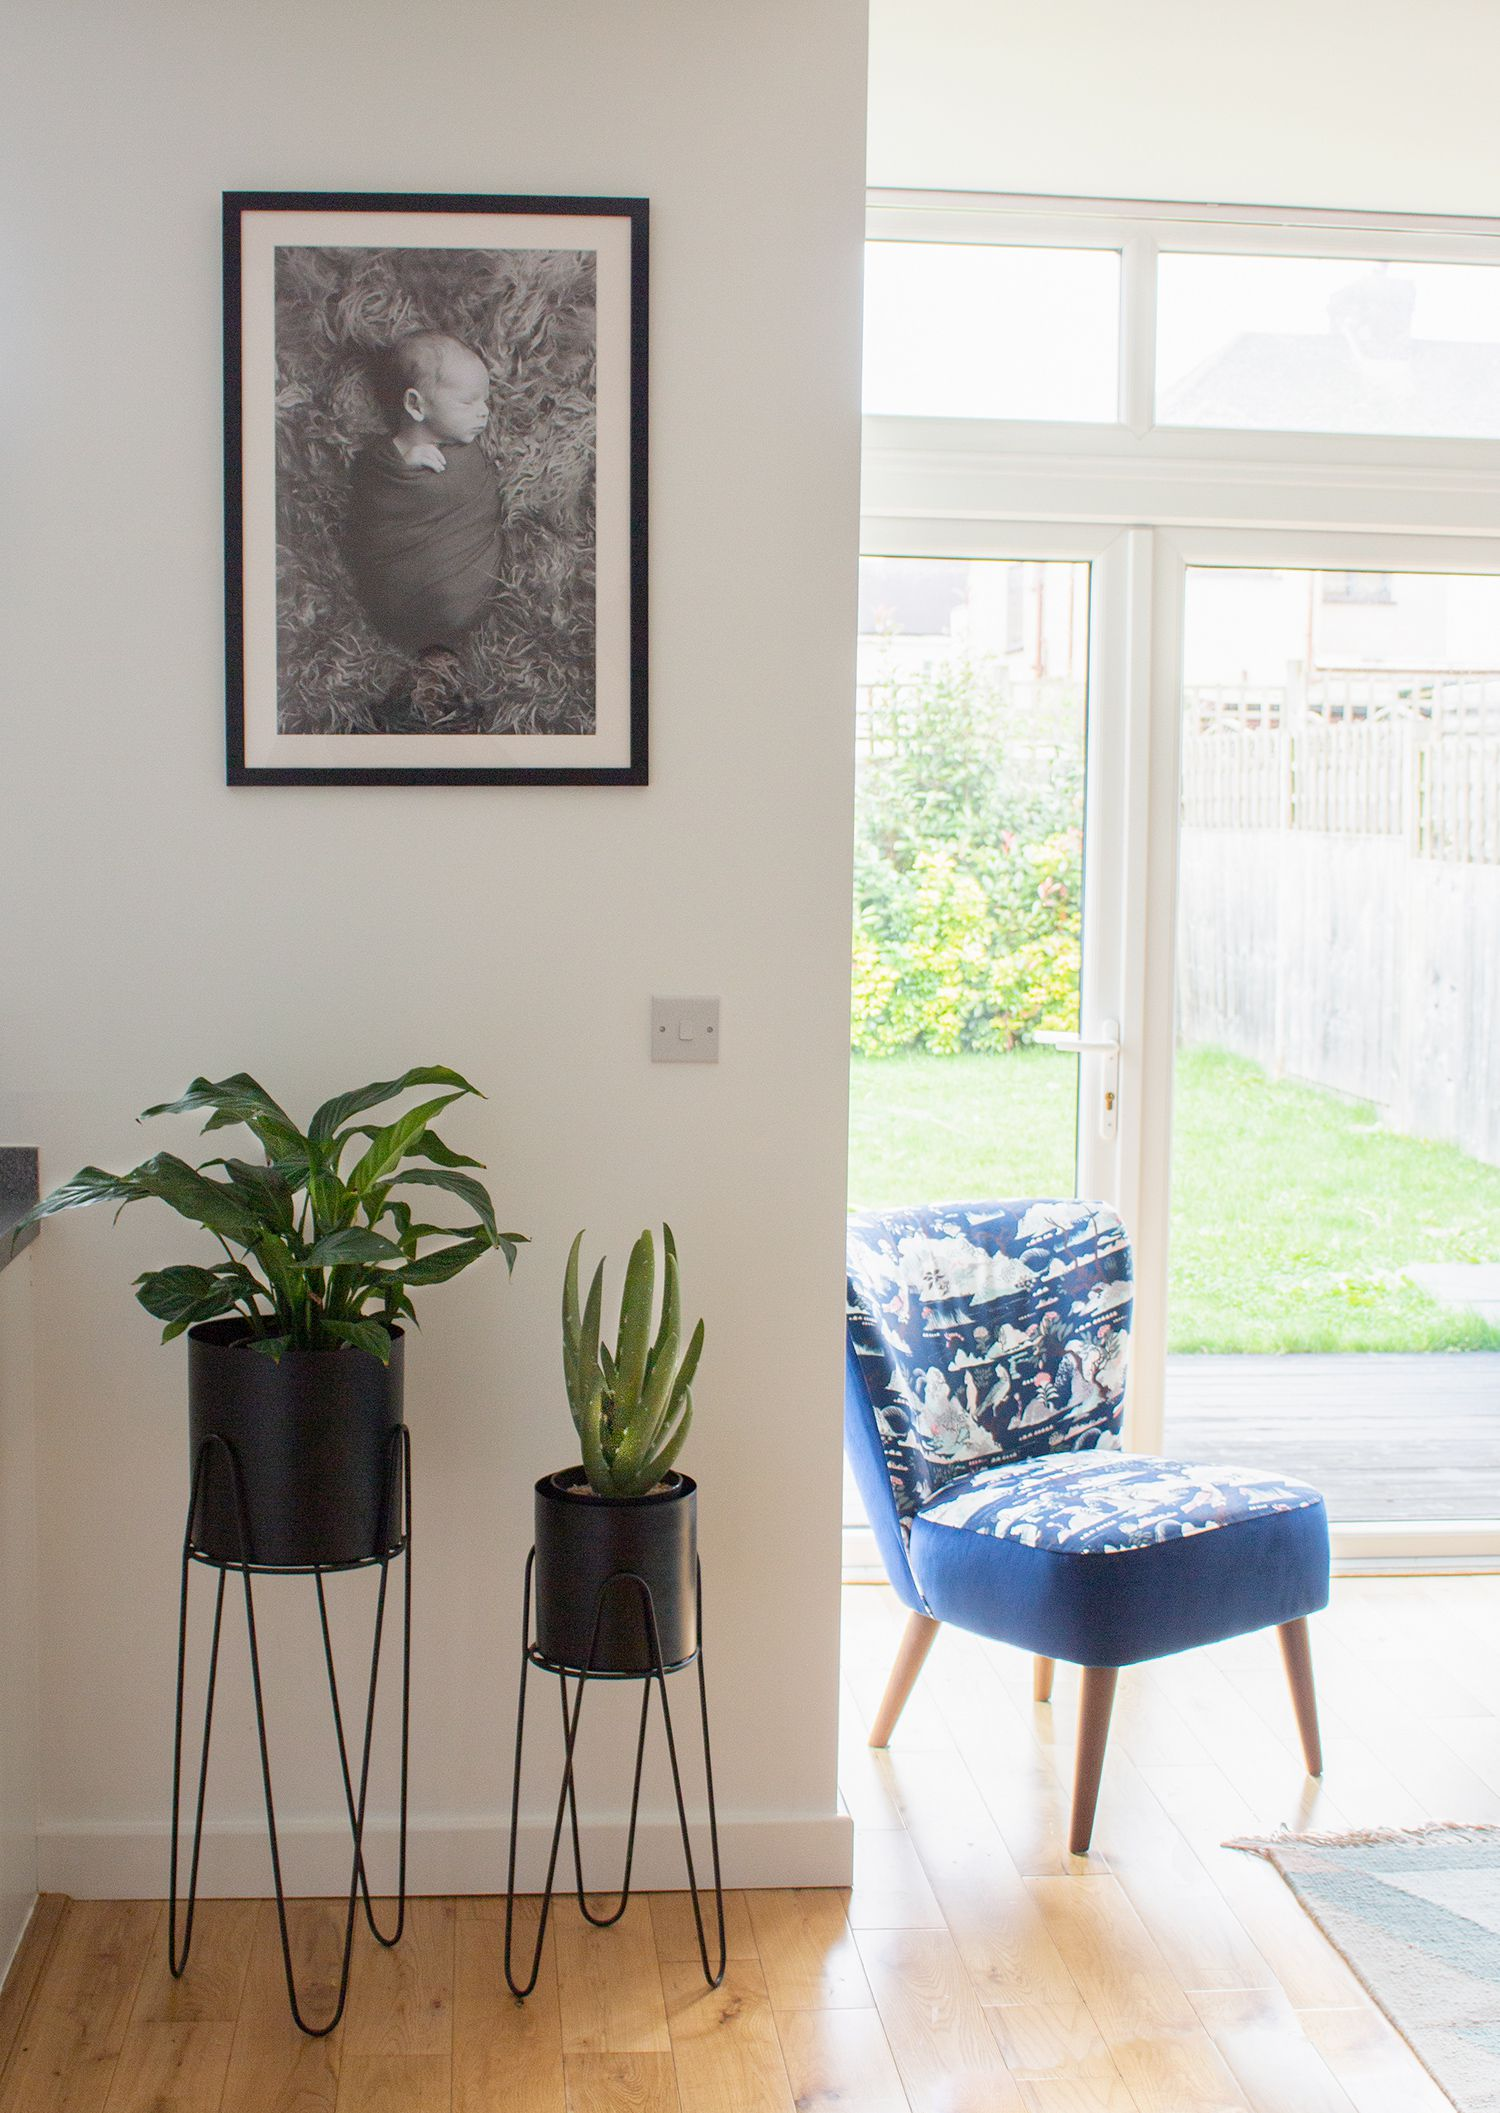 A photo of the chair by the windows, with two black planters and a personal photo on the wall.